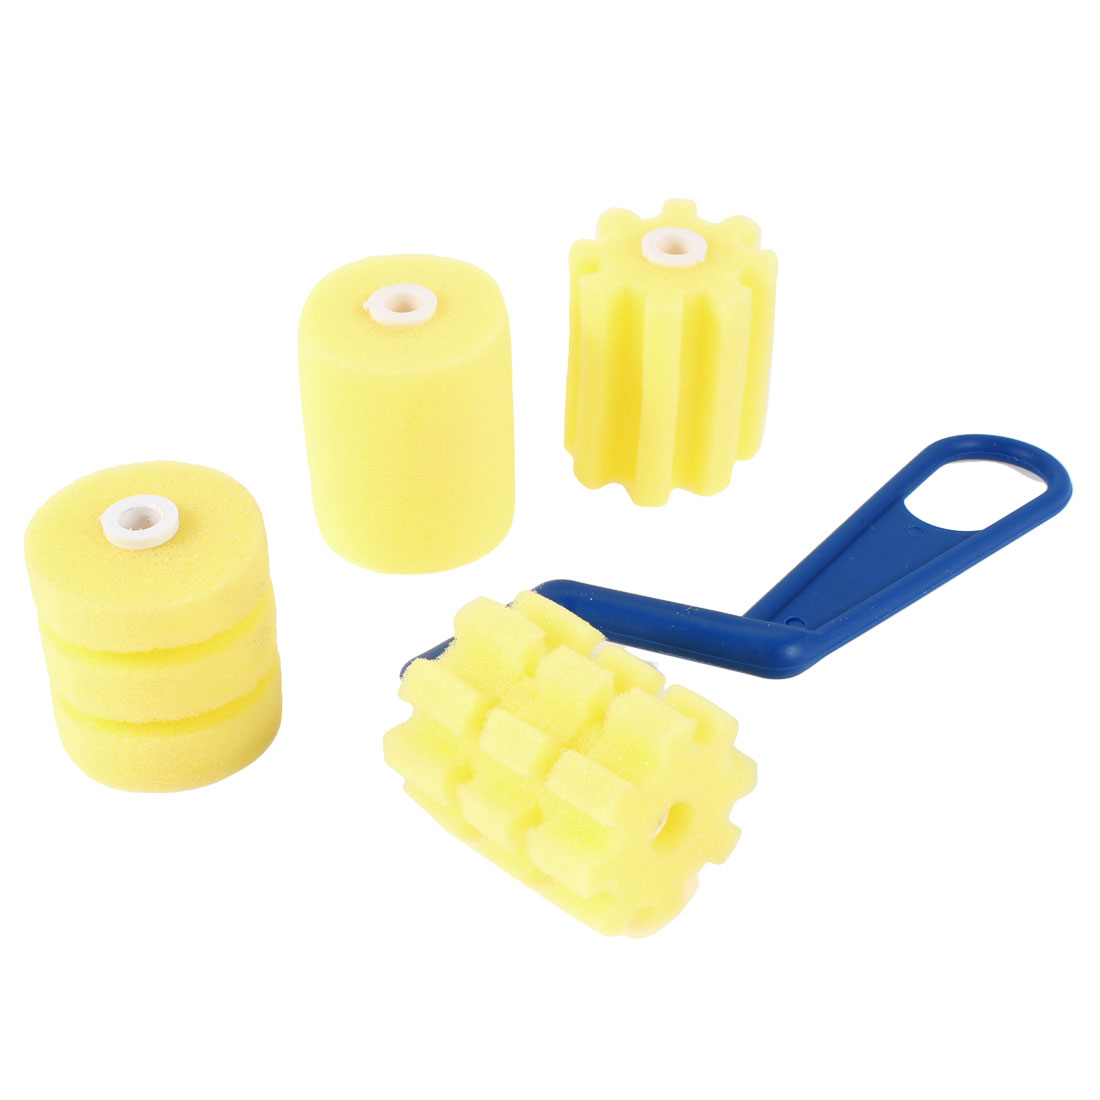 Drawing Blue Handle Yellow Roller Sponges Brush w 3 Sponge Heads